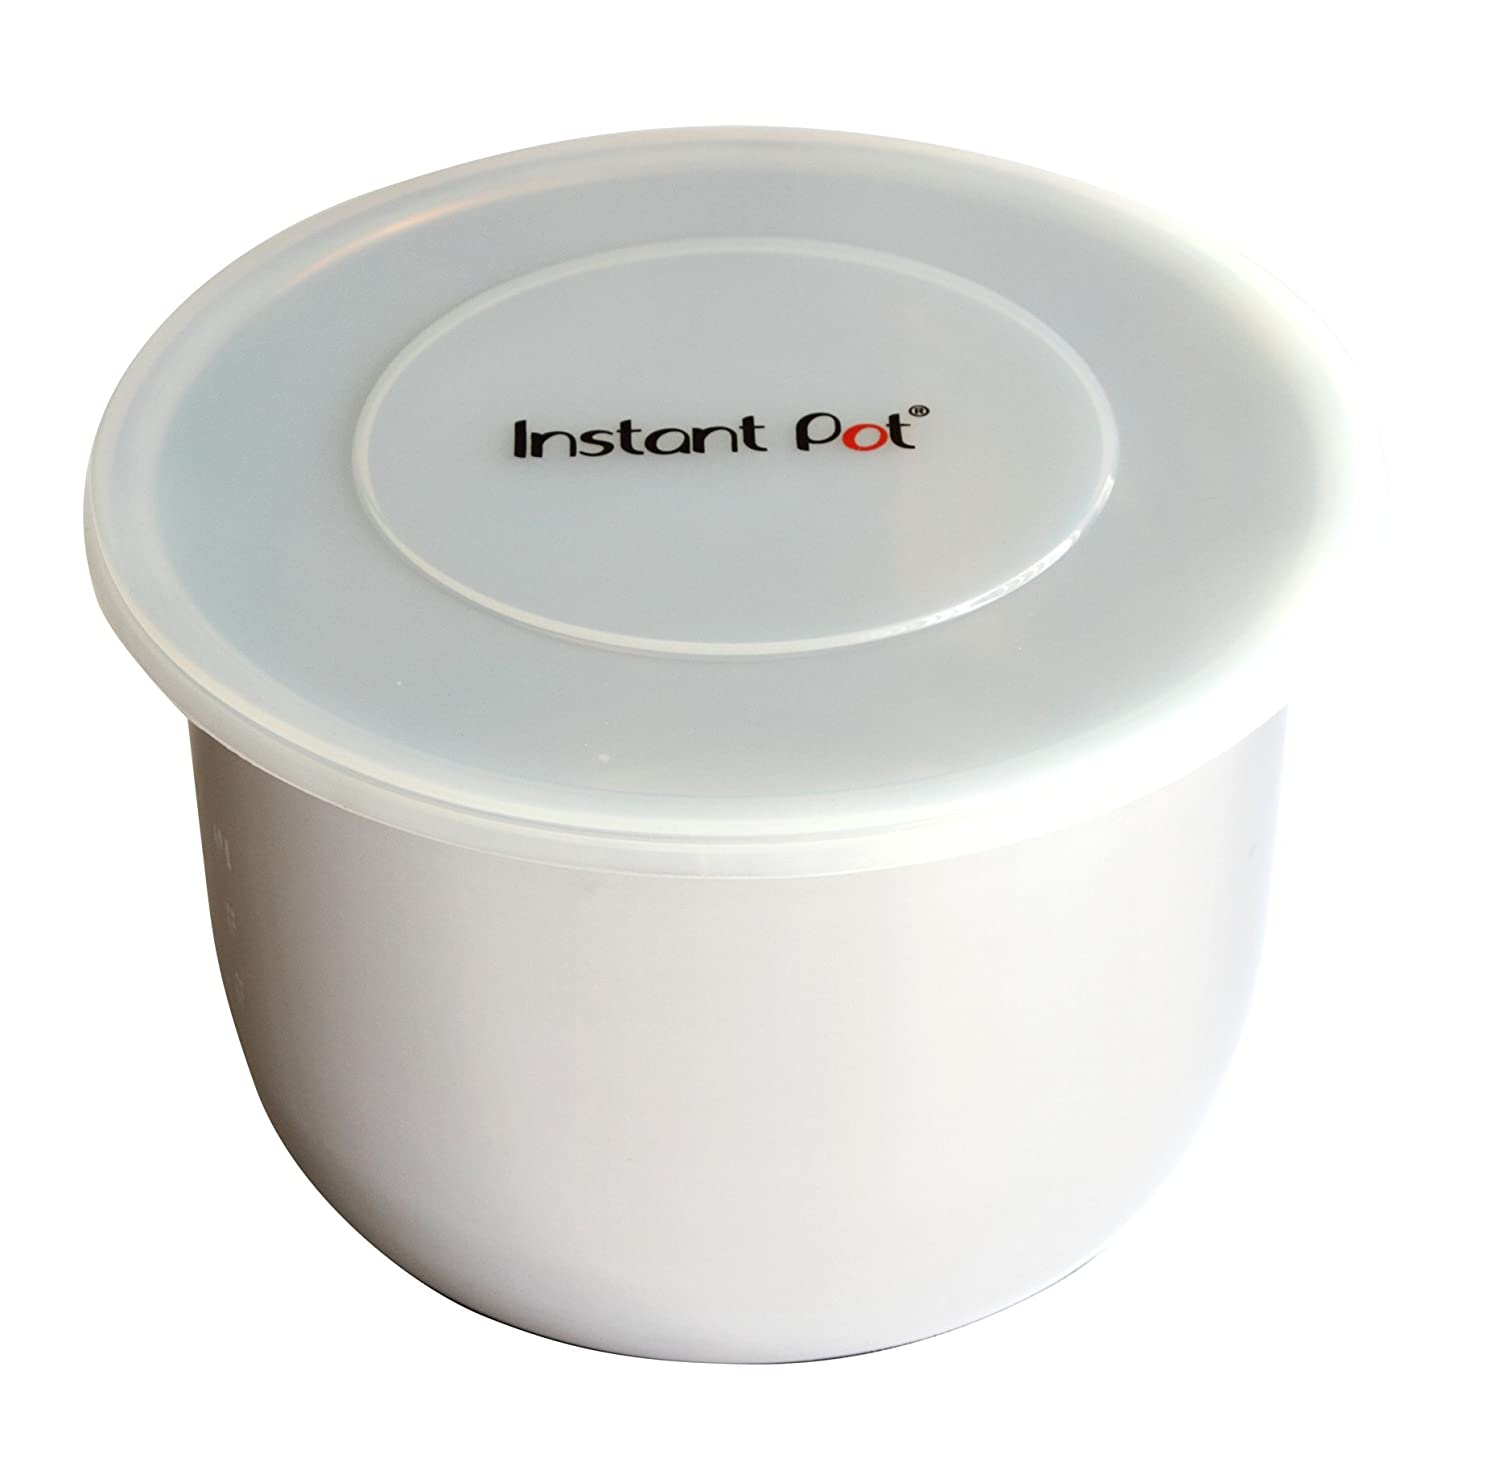 Instant Pot Accessory Silicone Lid